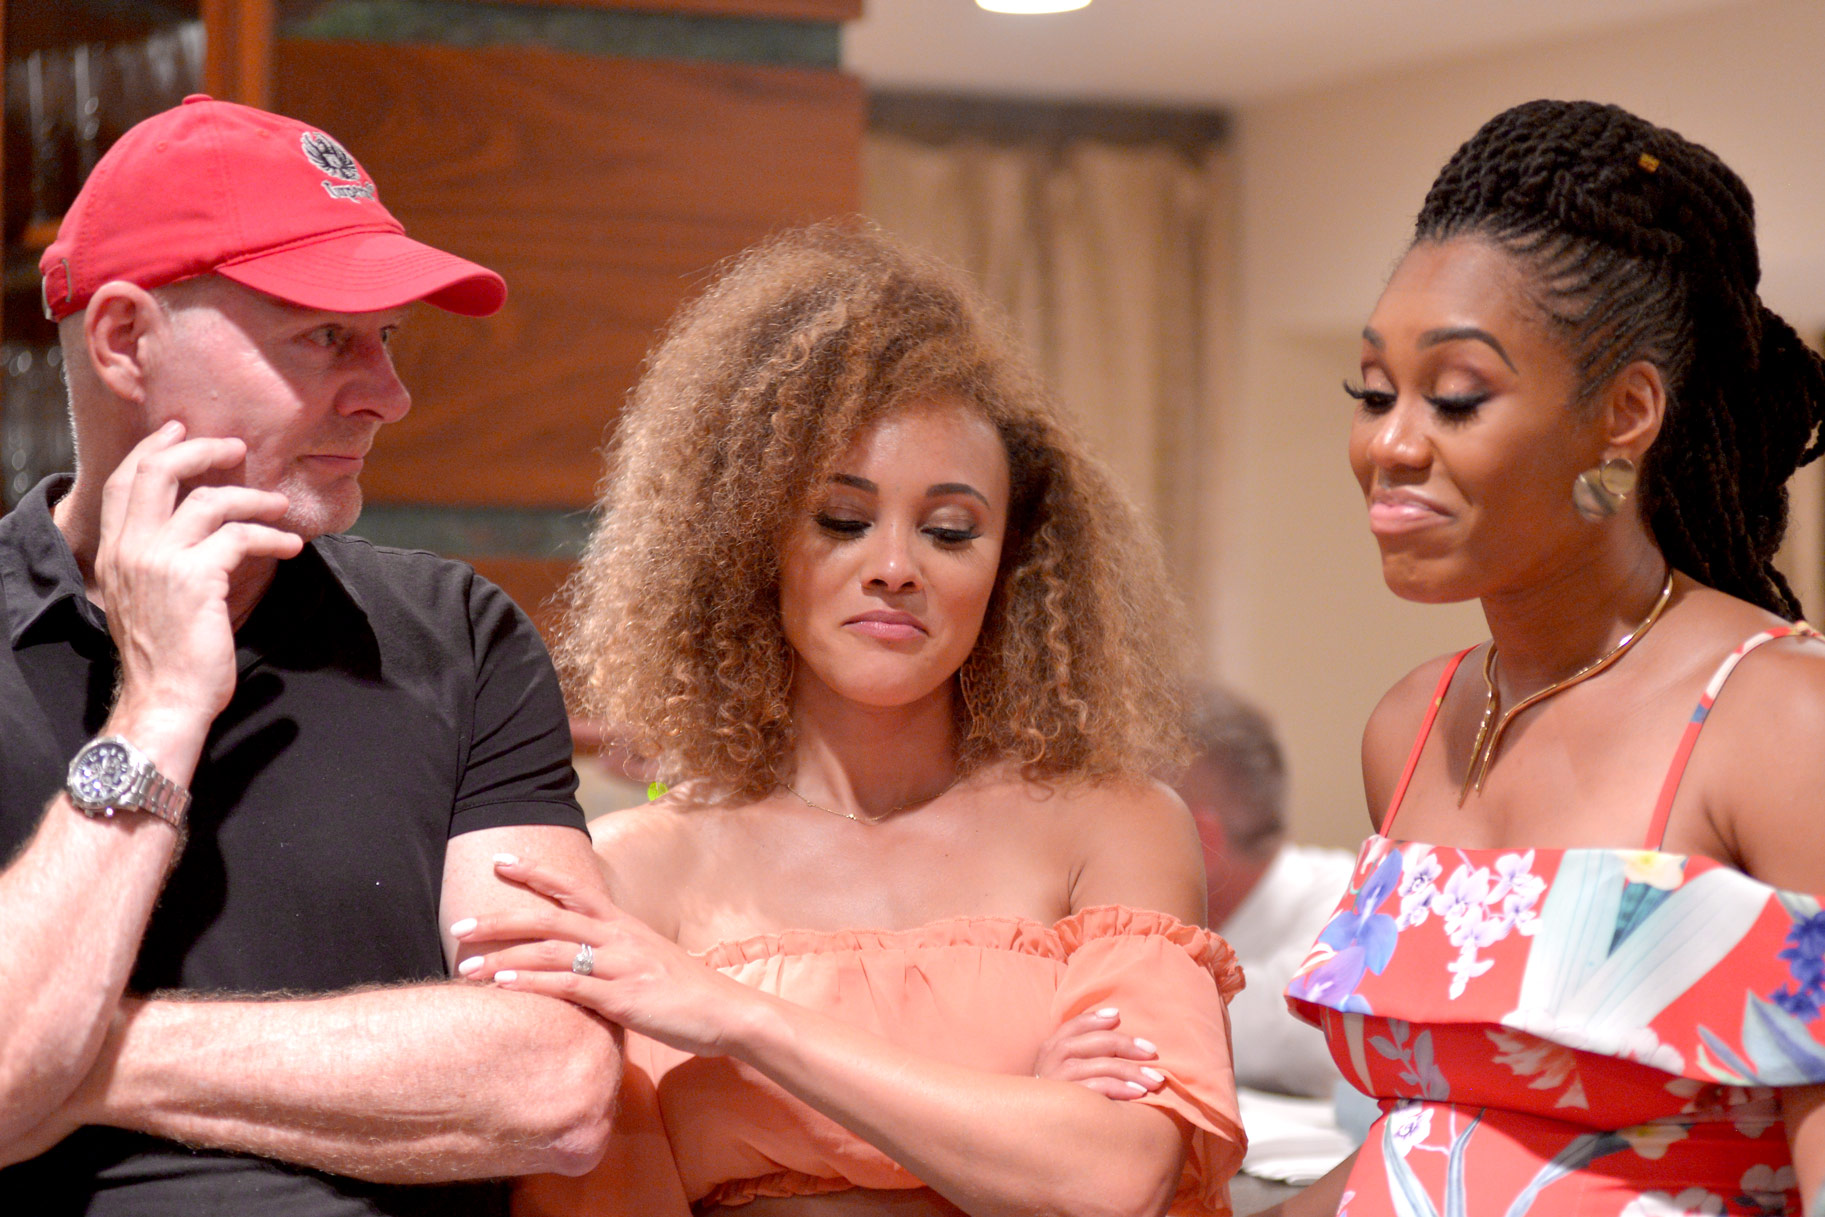 Michael Darby, Ashley Dary, Monique Samuels in The Real Housewives of Potomac Season 4